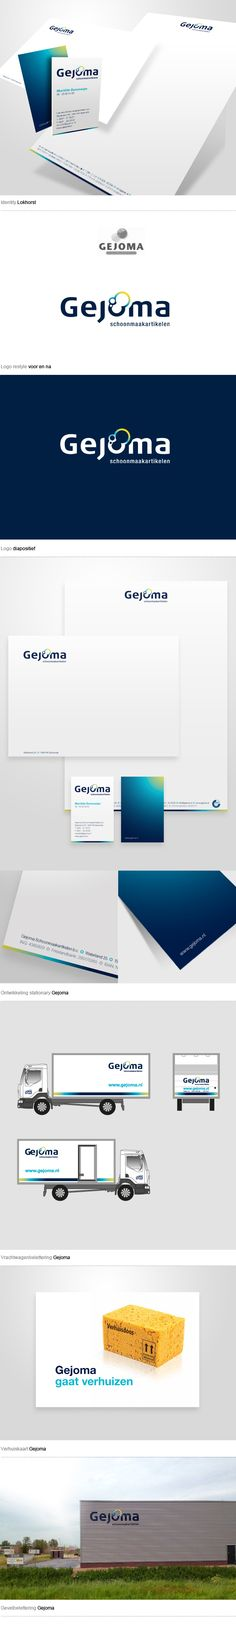 Gejoma | #stationary #corporate #design #corporatedesign #logo #identity #branding #marketing <<< repinned by an #advertising agency from #Hamburg / #Germany - www.BlickeDeeler.de